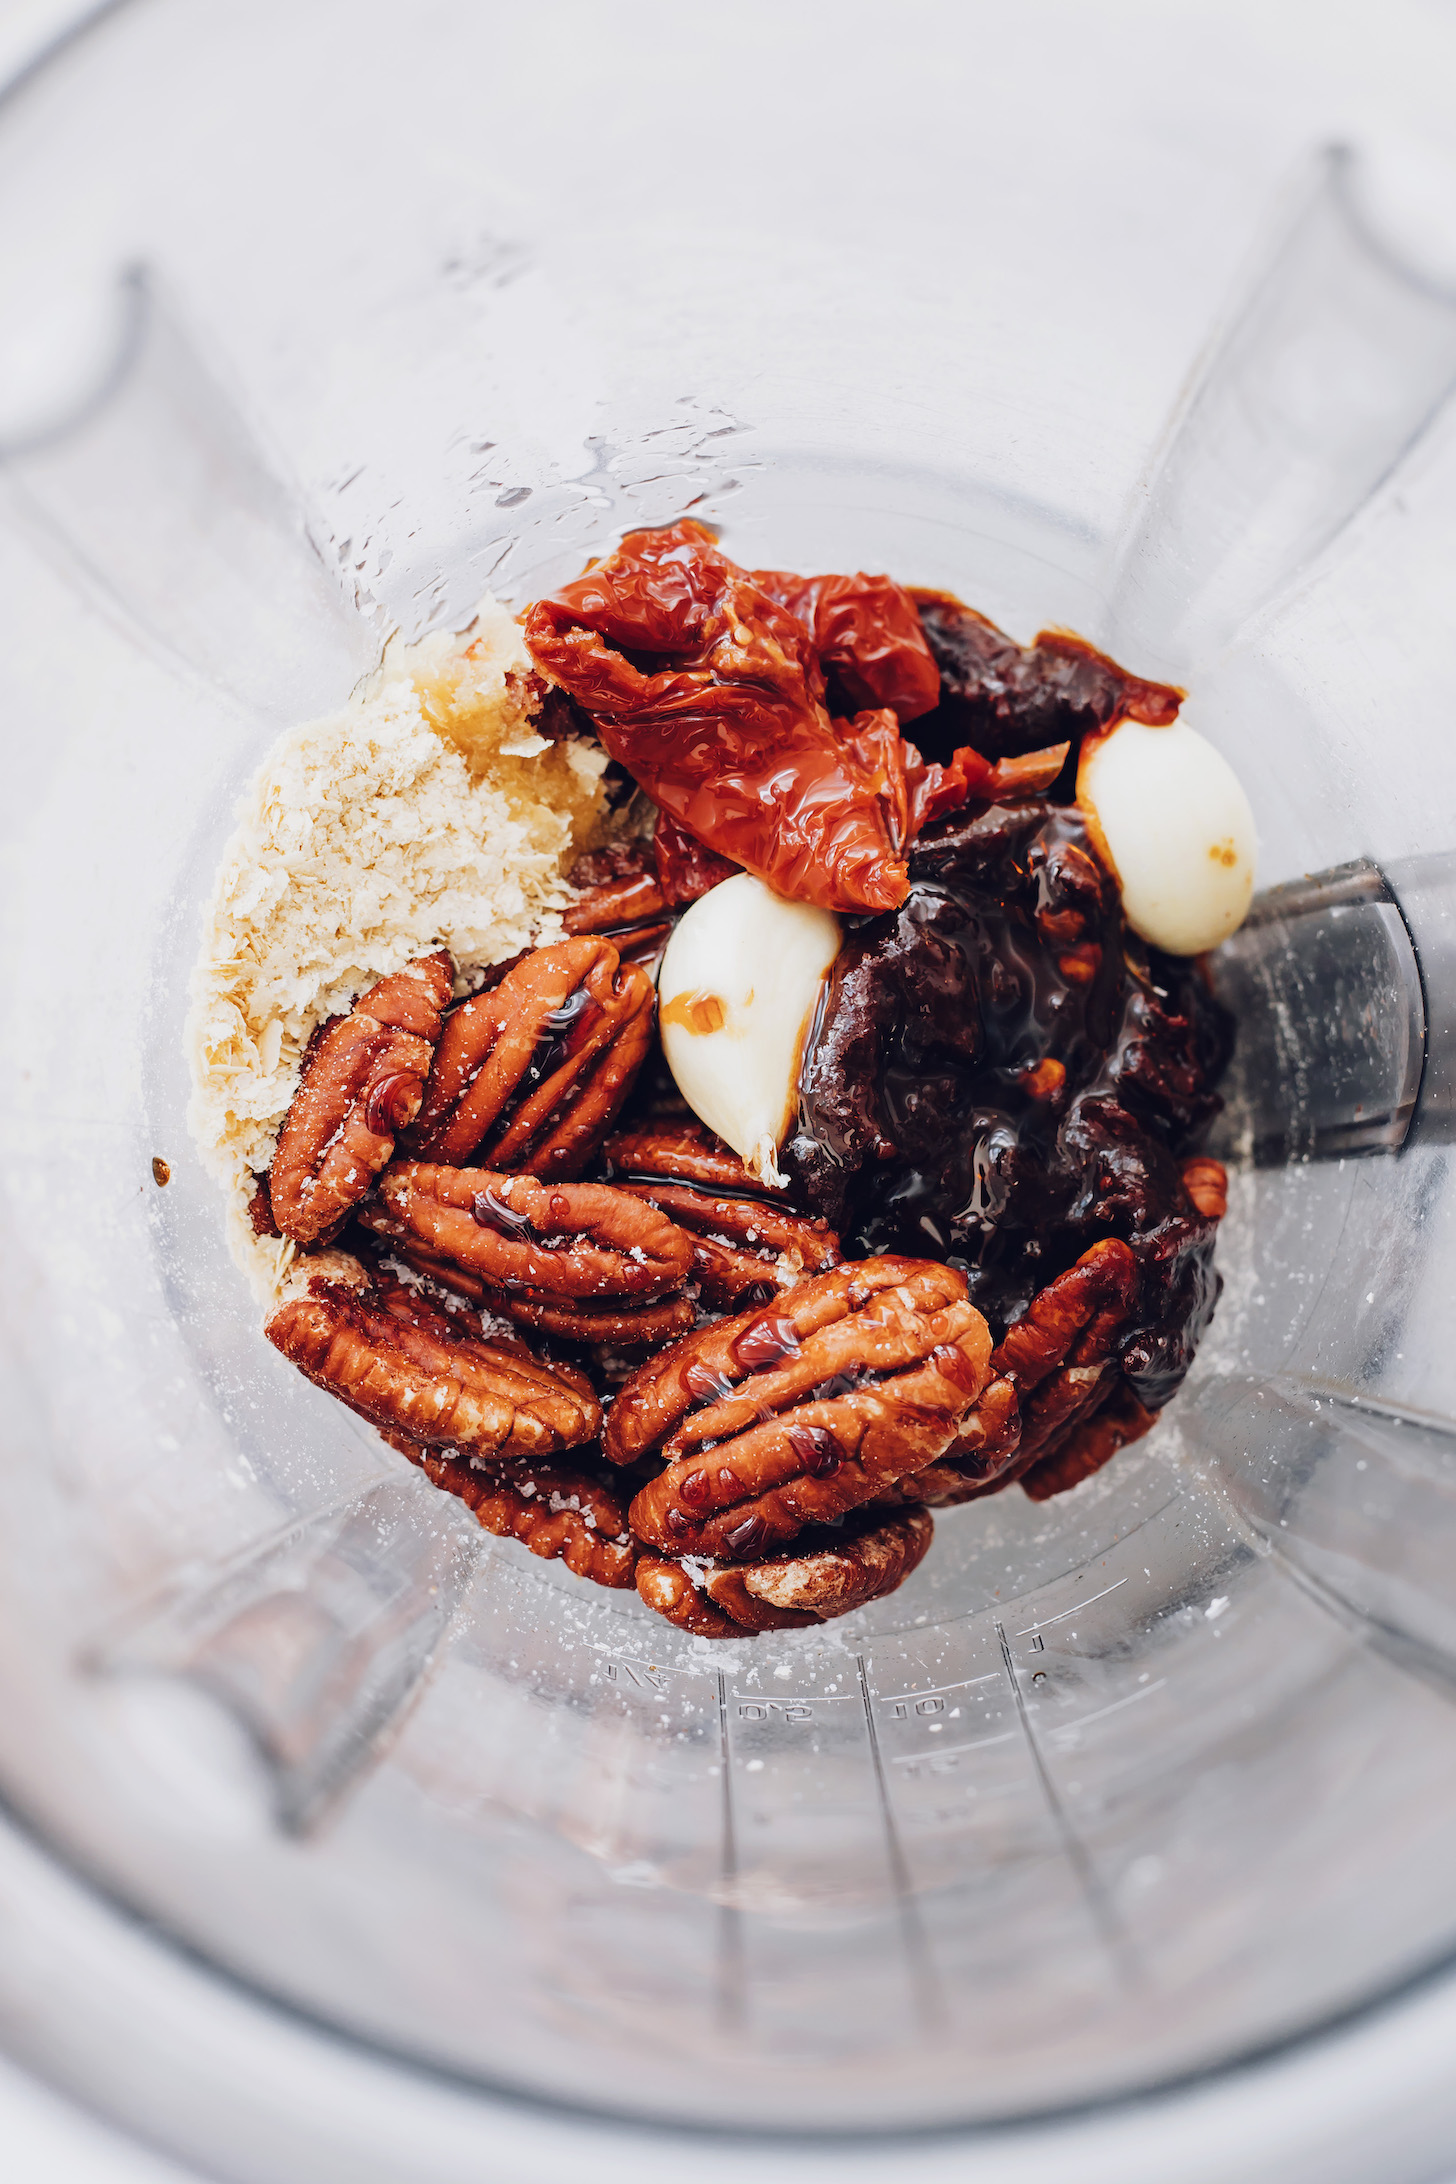 Blender with pecans, garlic, sun-dried tomatoes, salt, chipotle peppers, and nutritional yeast